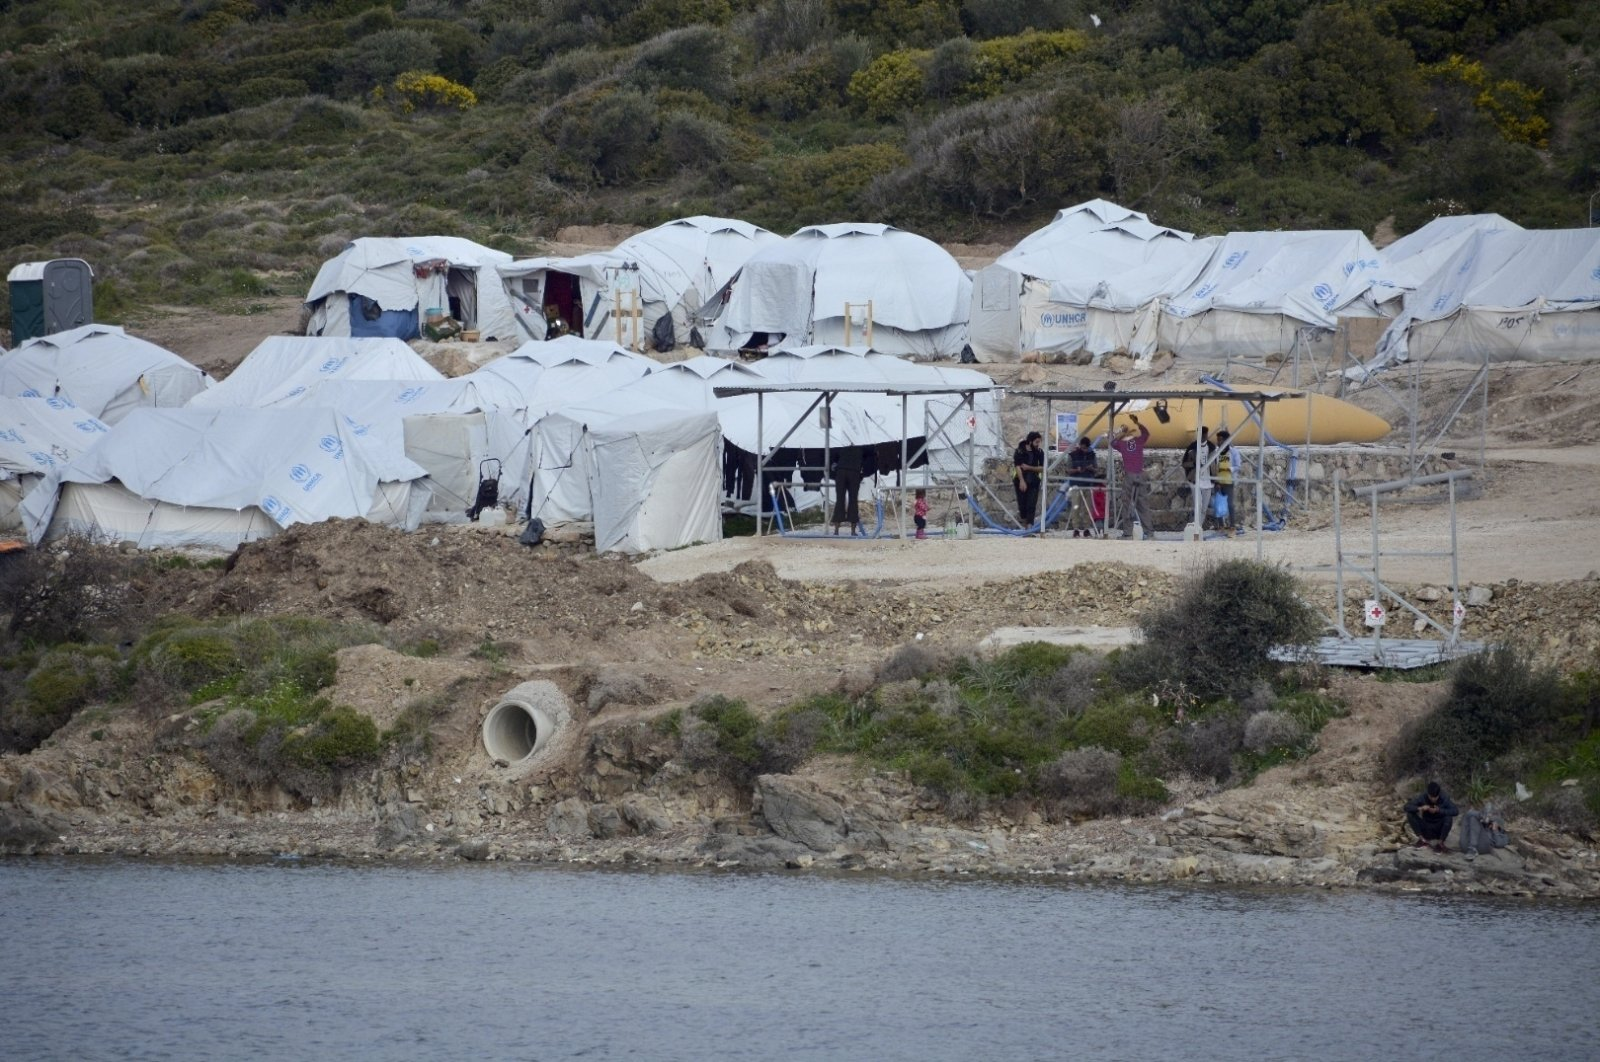 Migrants gather outside their tents in a refugee camp, on the eastern Aegean island of Lesbos, Greece, March 29, 2021. (AP Photo)